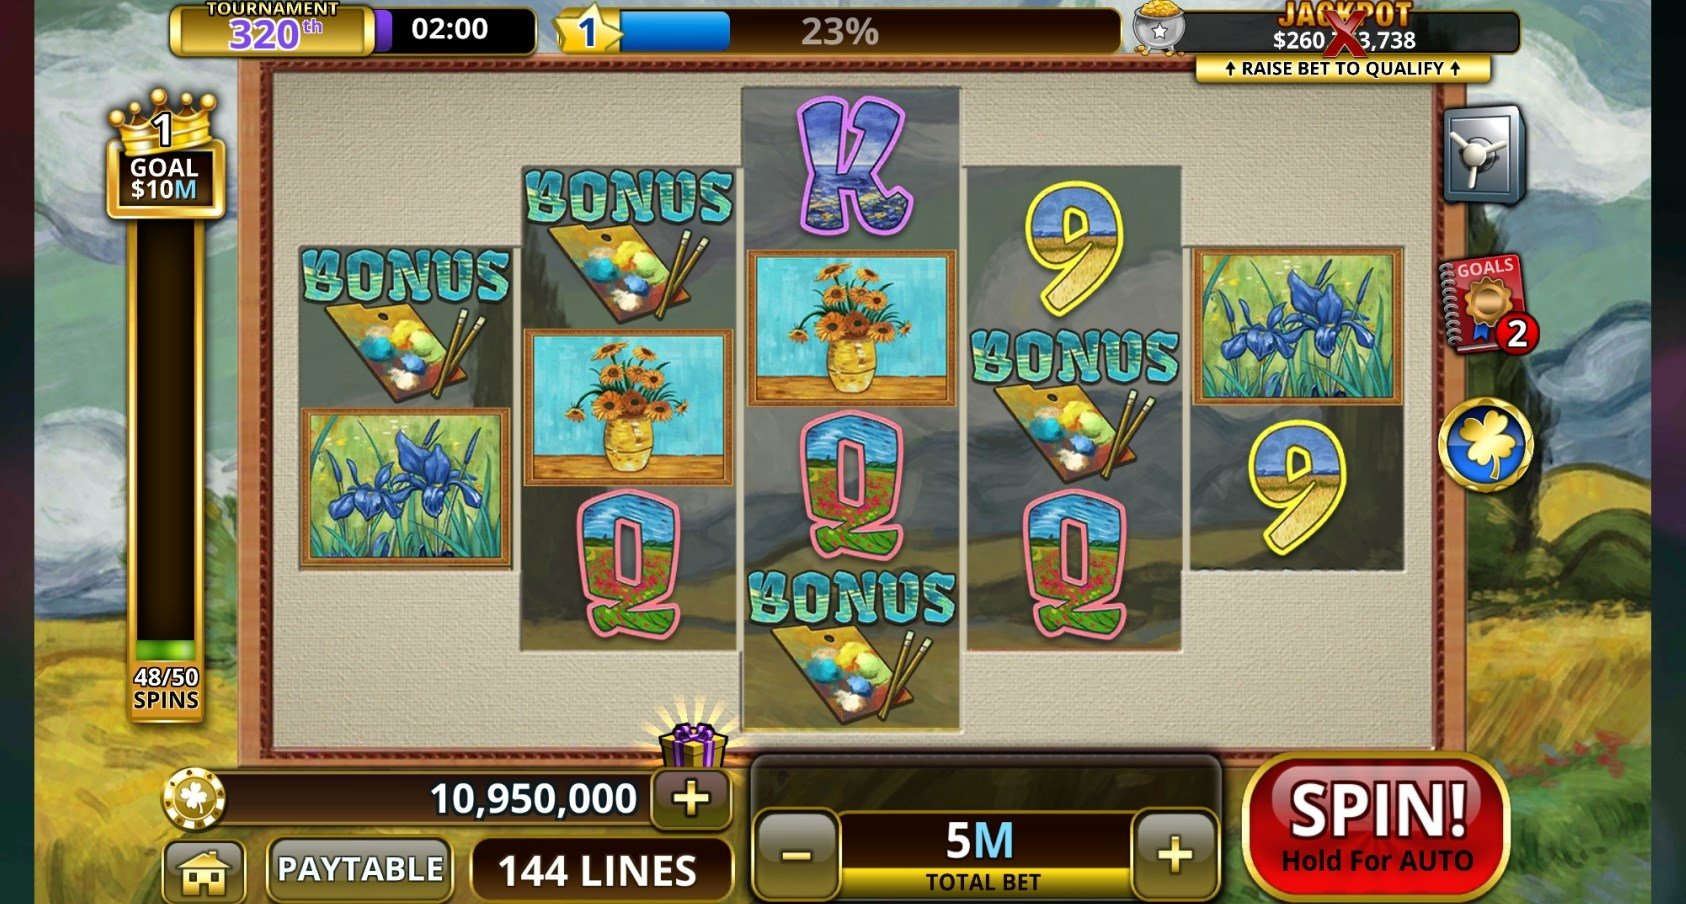 Can You Win Real Money On Cash Frenzy